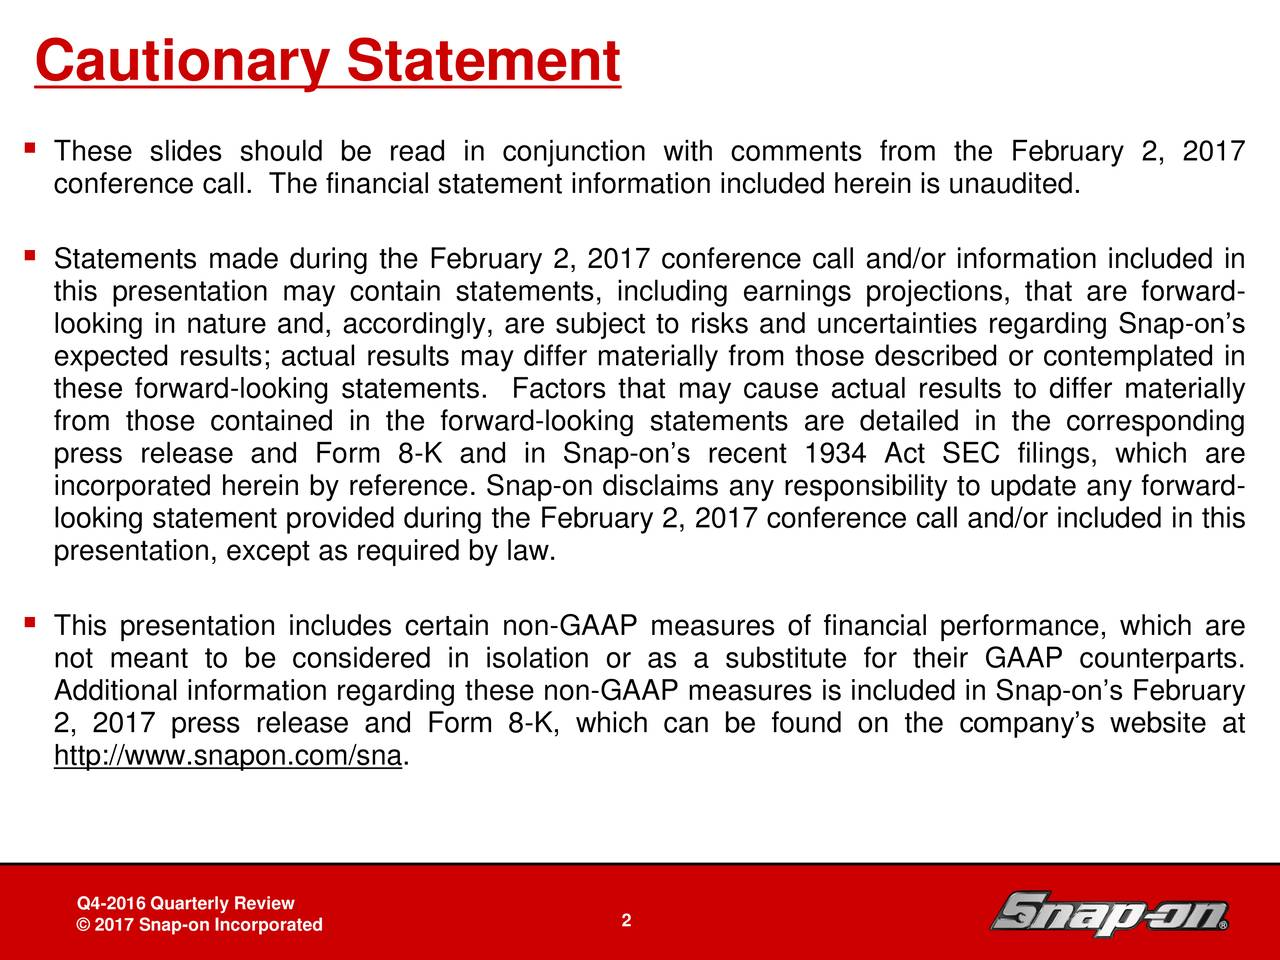 These slides should be read in conjunction with comments from the February 2, 2017 conference call. The financial statement information included herein is unaudited. Statements made during the February 2, 2017 conference call and/or information included in this presentation may contain statements, including earnings projections, that are forward- looking in nature and, accordingly, are subject to risks and uncertainties regarding Snap-ons expected results; actual results may differ materially from those described or contemplated in these forward-looking statements. Factors that may cause actual results to differ materially from those contained in the forward-looking statements are detailed in the corresponding press release and Form 8-K and in Snap-ons recent 1934 Act SEC filings, which are incorporated herein by reference. Snap-on disclaims any responsibility to update any forward- looking statement provided during the February 2, 2017 conference call and/or included in this presentation, except as required by law. This presentation includes certain non-GAAP measures of financial performance, which are not meant to be considered in isolation or as a substitute for their GAAP counterparts. Additional information regarding these non-GAAP measures is included in Snap-ons February 2, 2017 press release and Form 8-K, which can be found on the companys website at http://www.snapon.com/sna. Snap-on Tools In-Depth Business Review Board of Directors Review 2April 27, 2011n Incorporated DB22 - 2